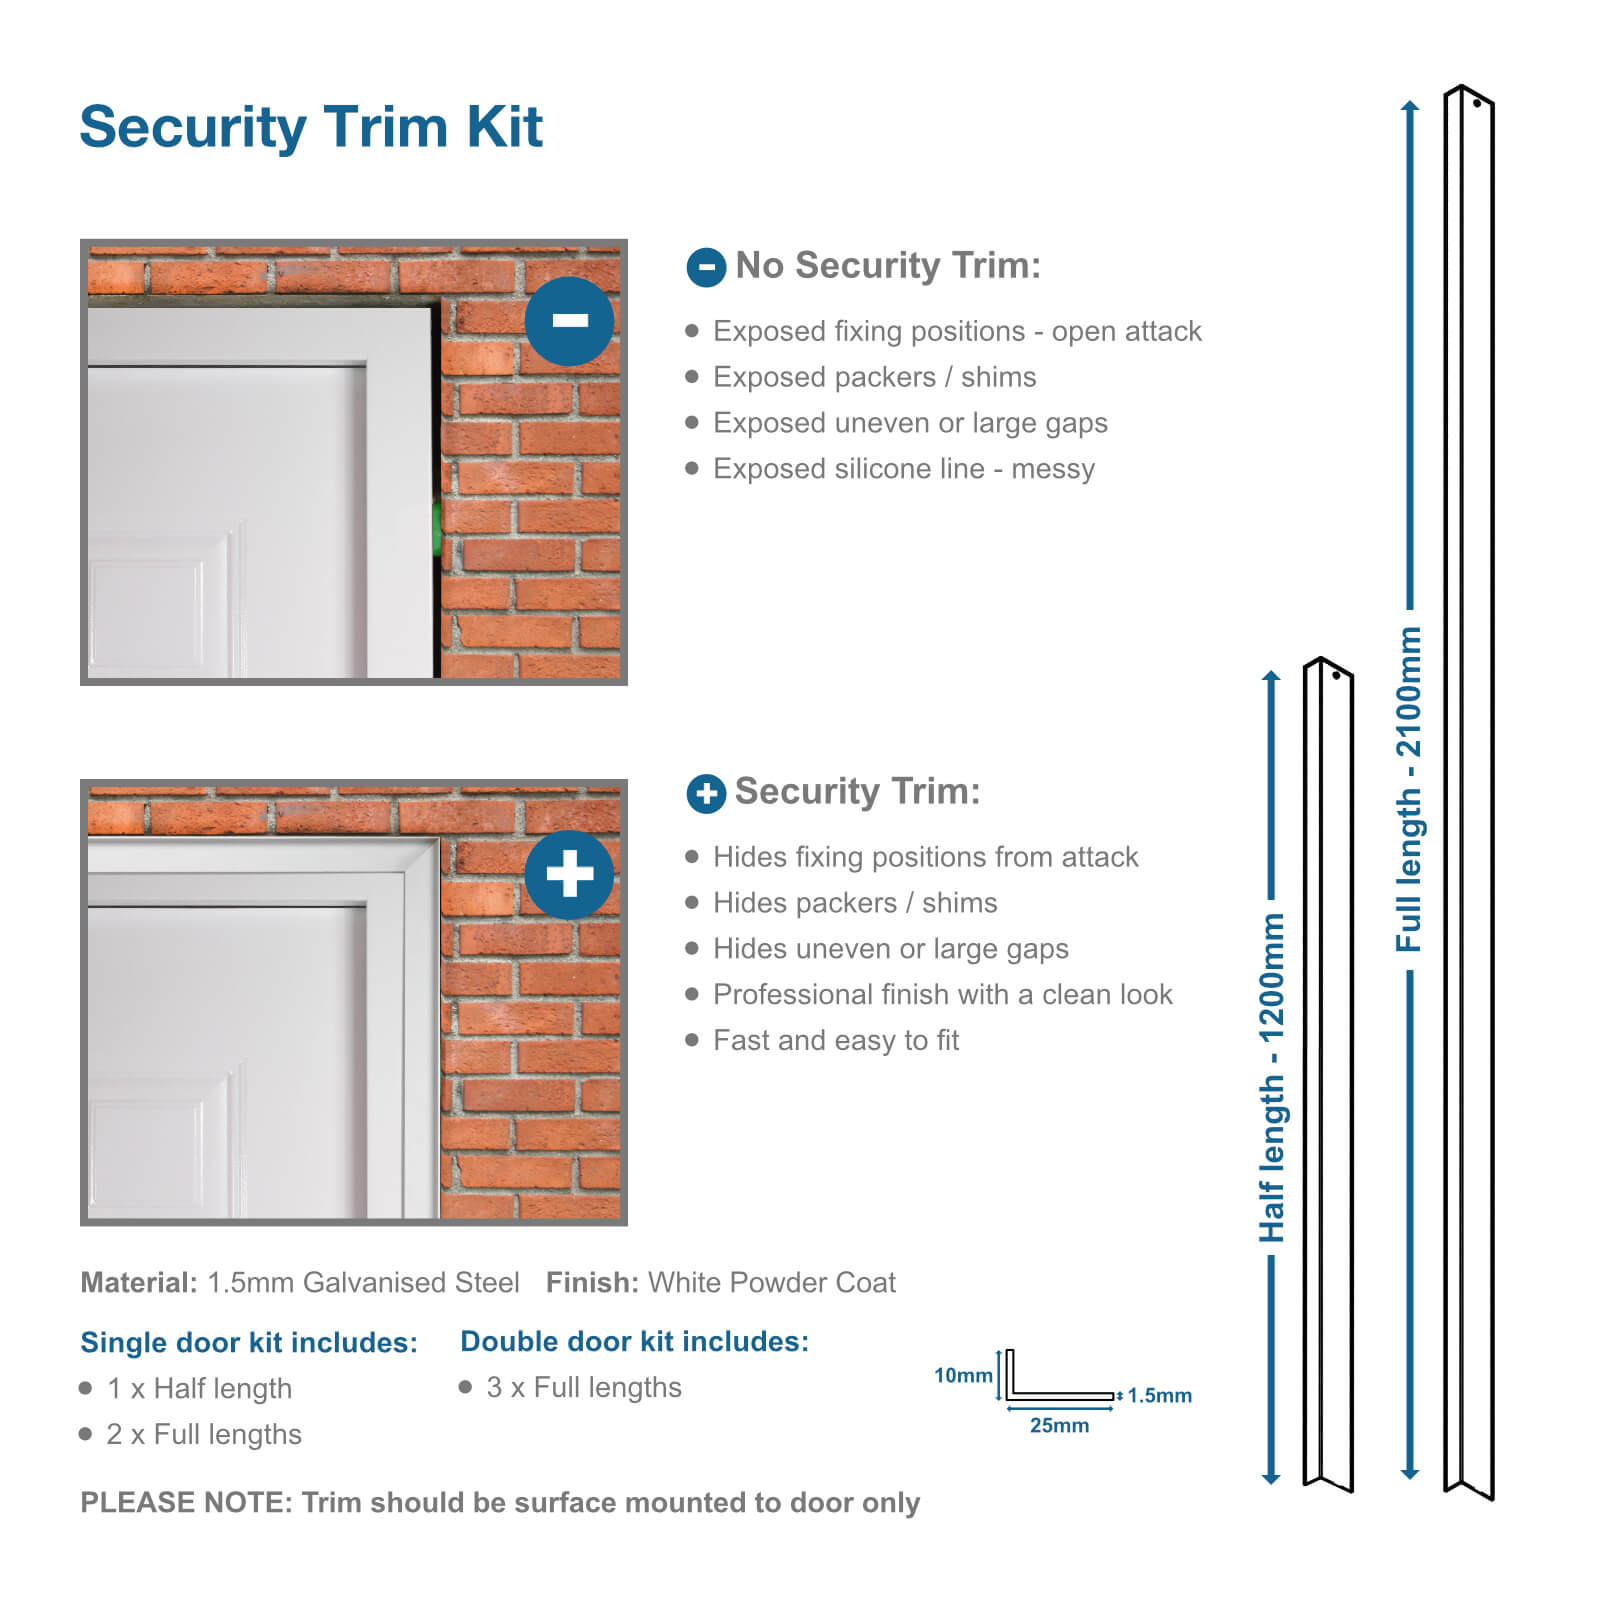 Flush mounted security trim kit for certified steel doors